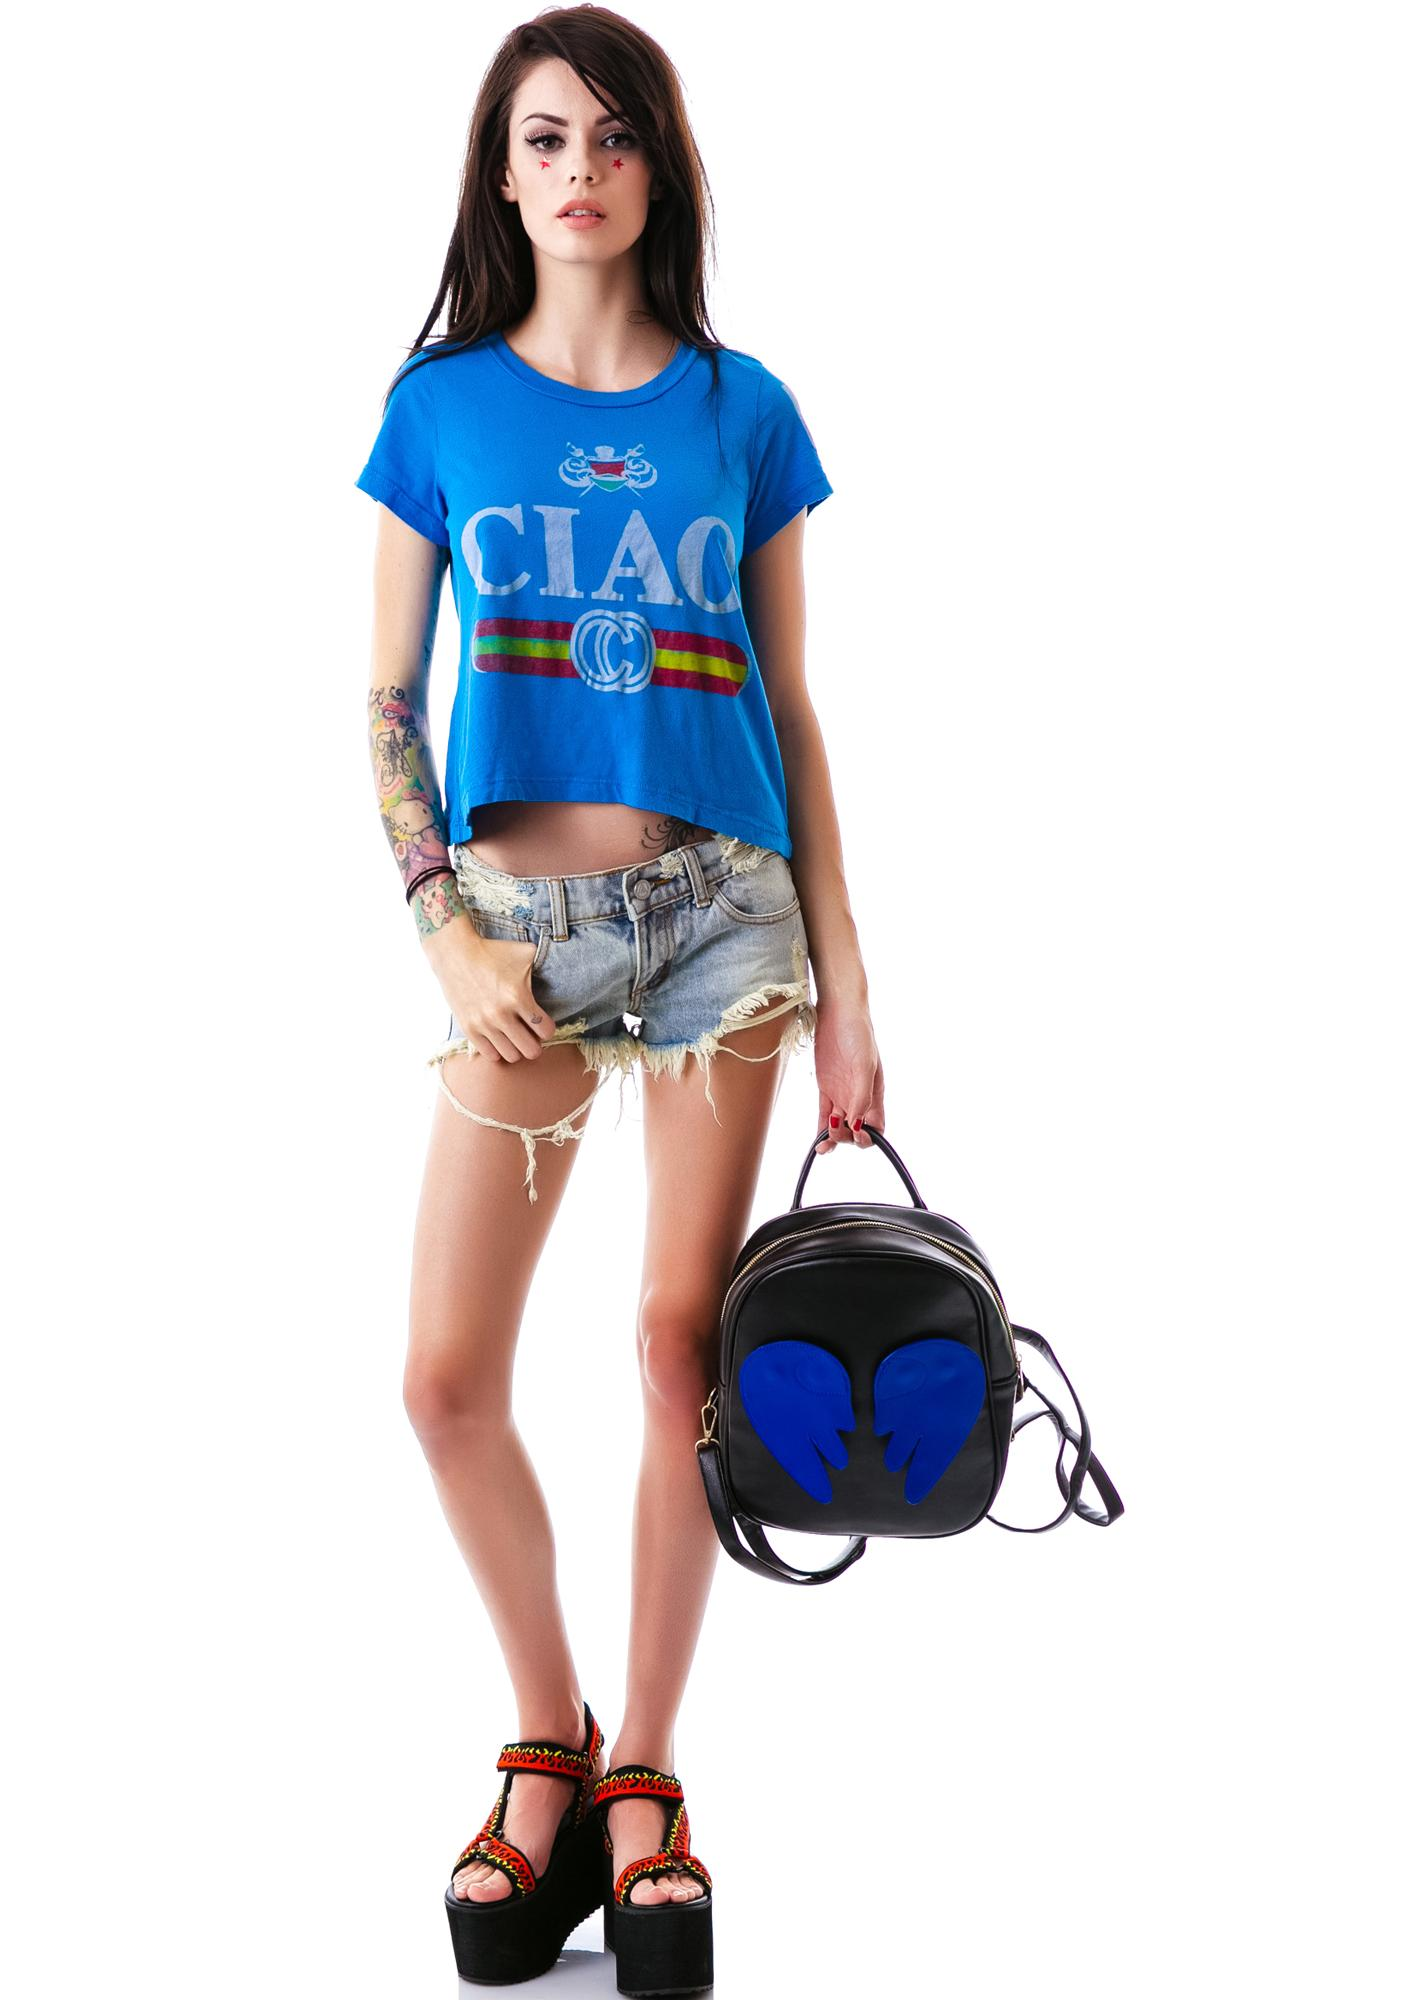 Rebel Yell Ciao Crop Tee